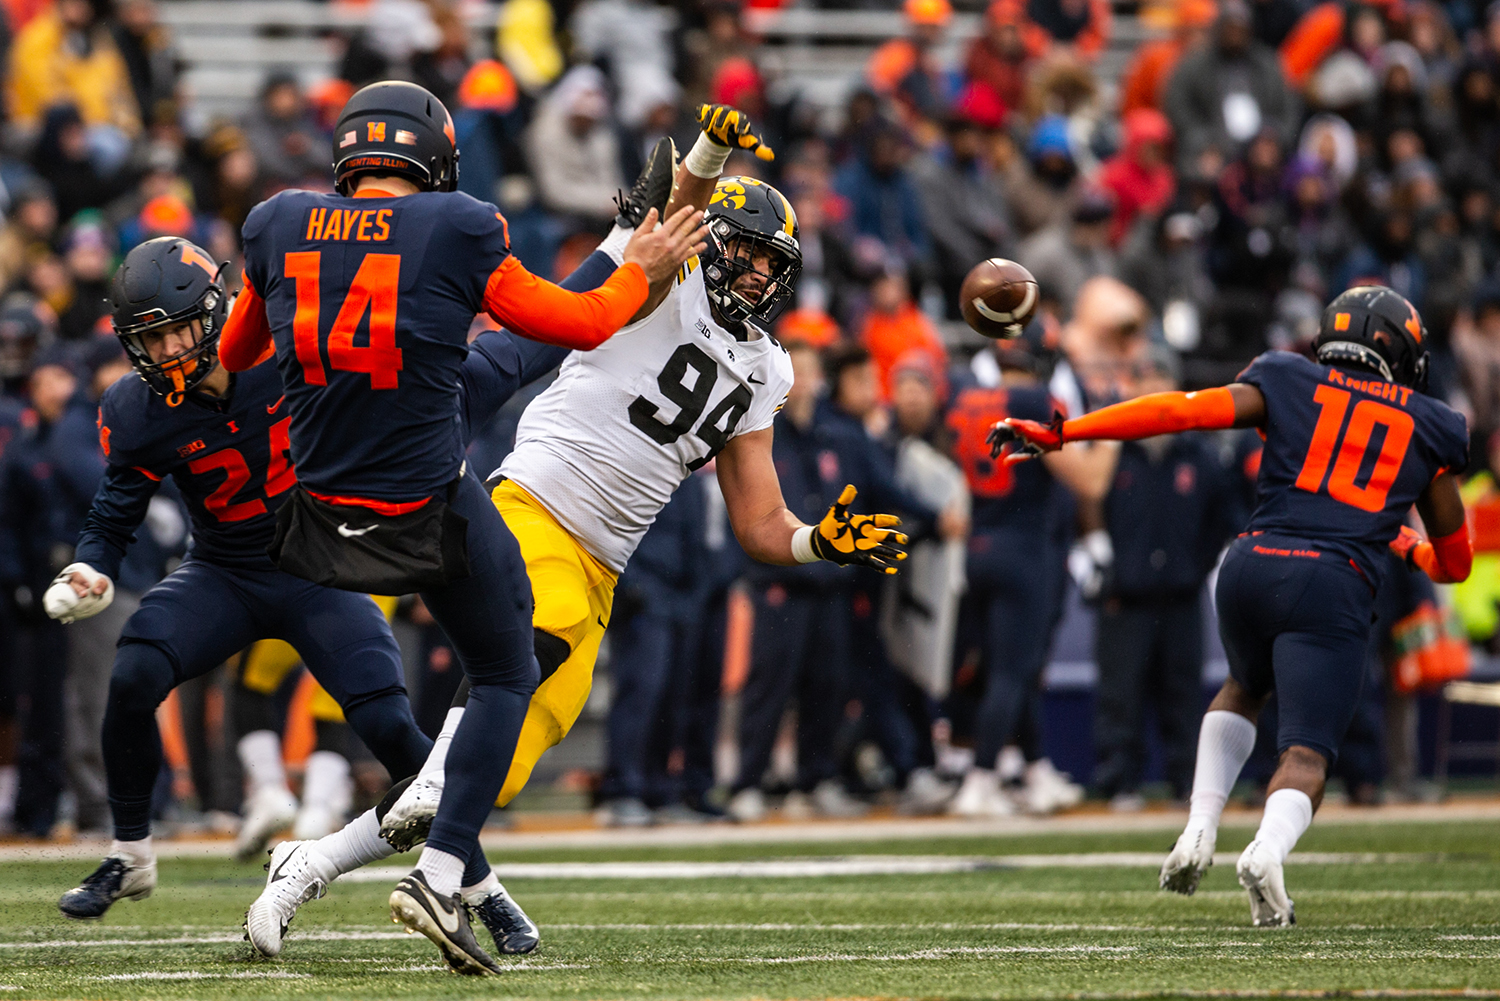 Iowa defensive lineman A.J. Epenesa blocks a punt during Iowa's game against Illinois at Memorial Stadium in Champaign on Saturday, Nov. 17, 2018. The Hawkeyes defeated the Fighting Illini 63-0.